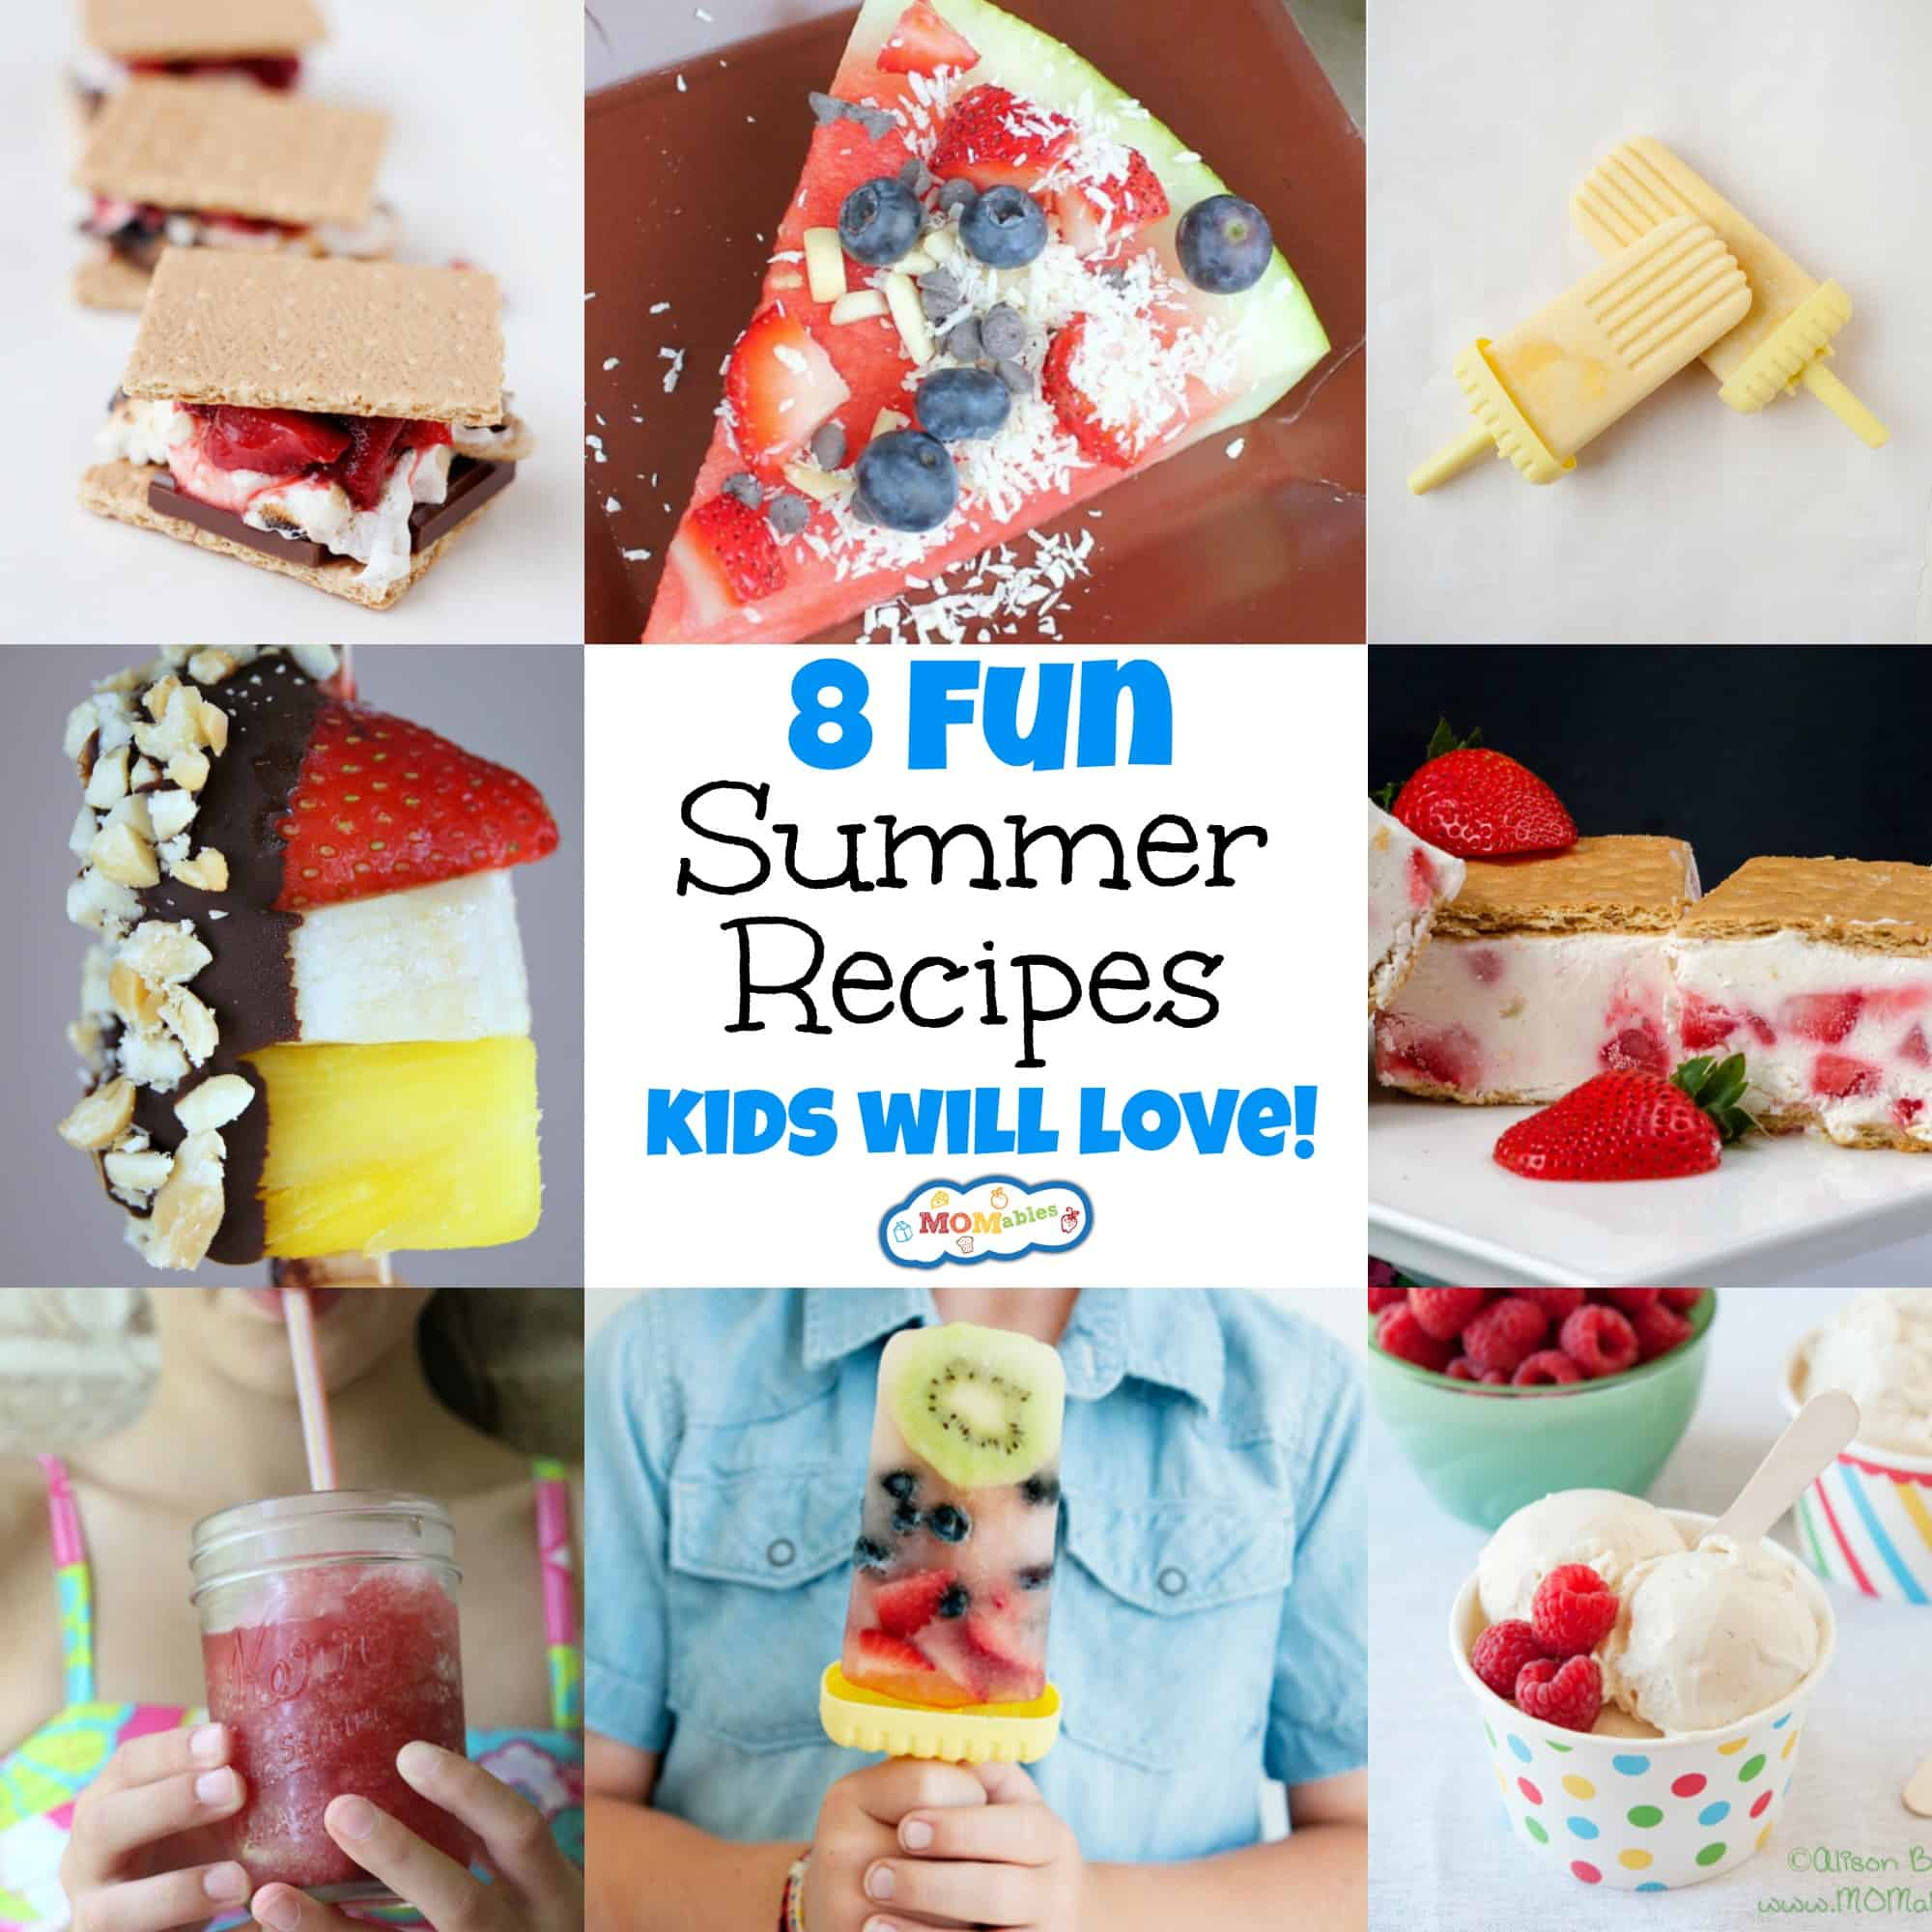 Celebrate the end of the school year with these 8 fun summer recipes that both kids and adults will love! They'll cool you off during hot days and are perfect to share with the whole family.